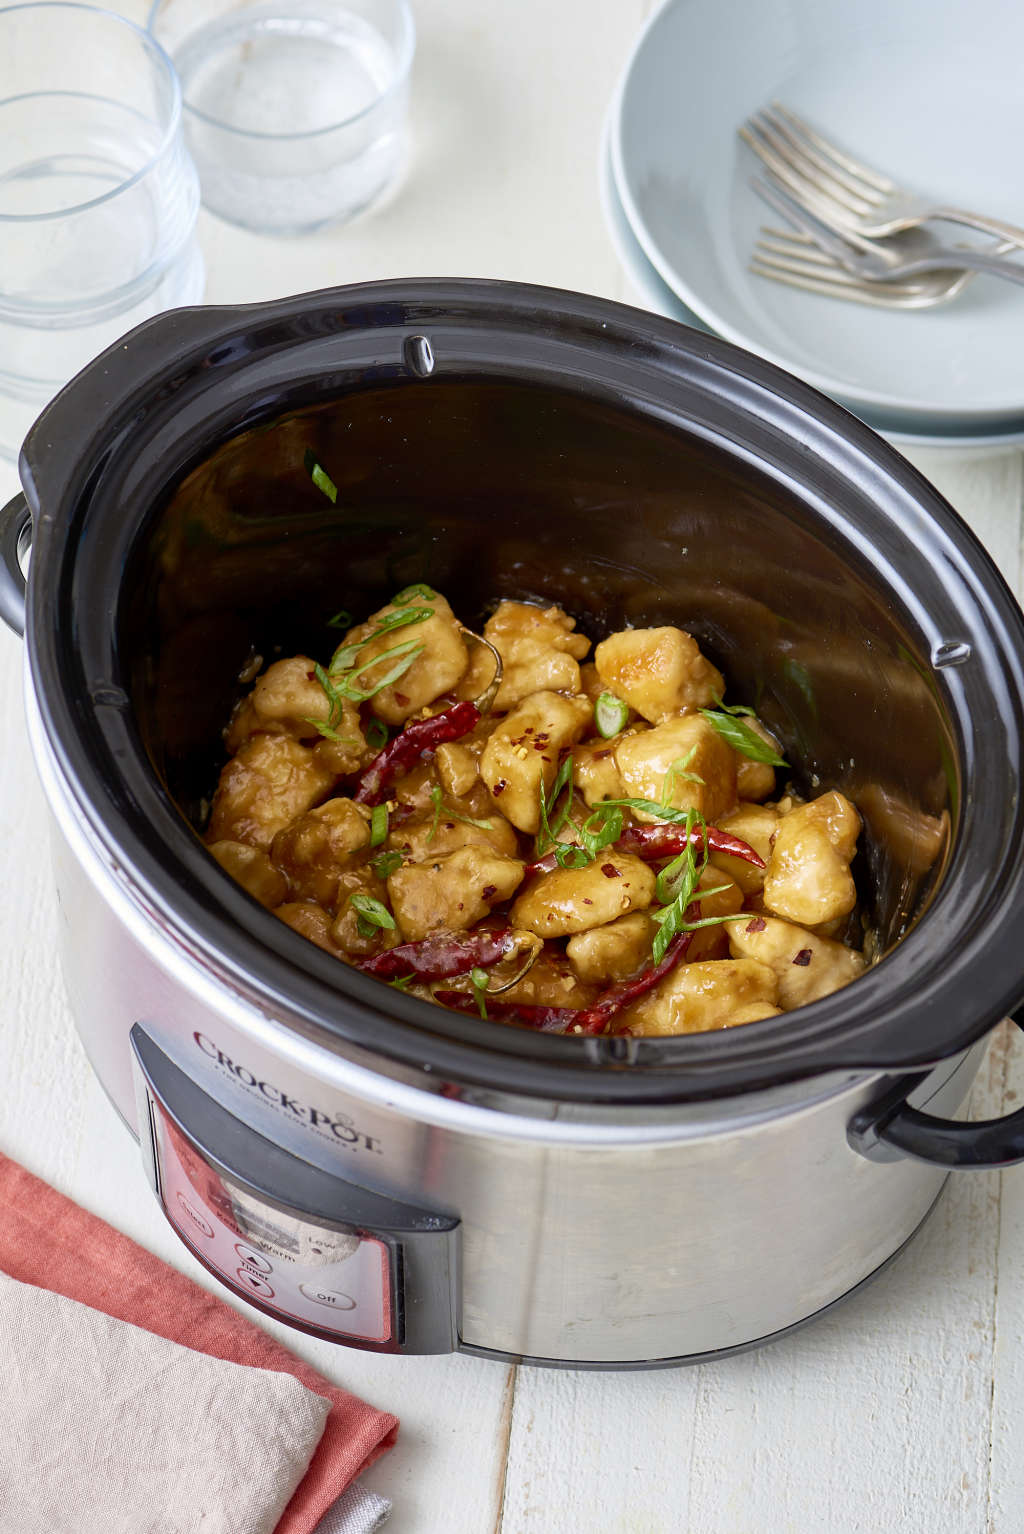 The Best Way to Make Slow Cooker General Tso's Chicken